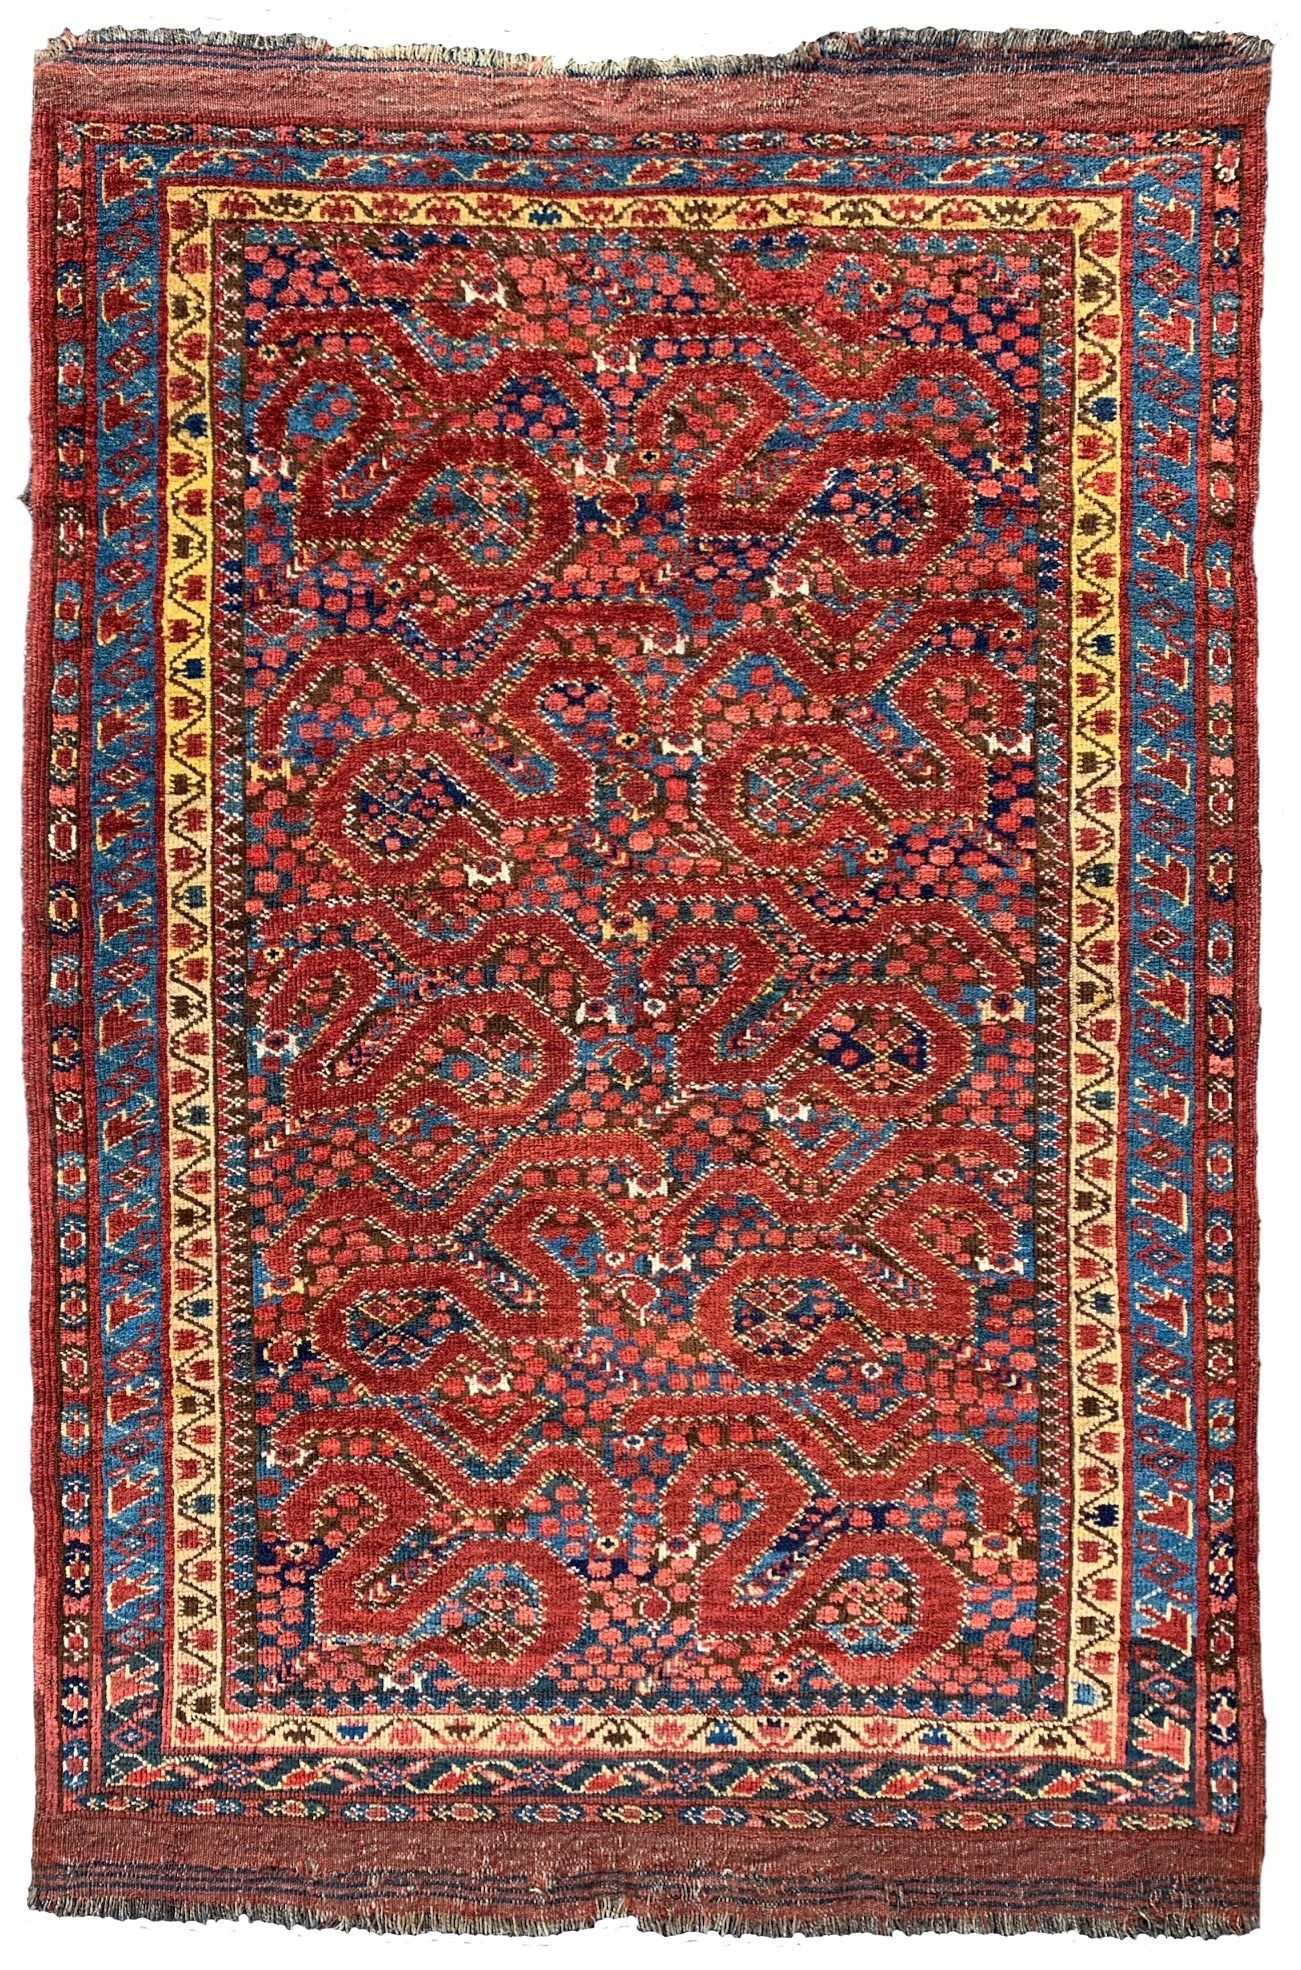 Central Asian Beshir cloudband rug